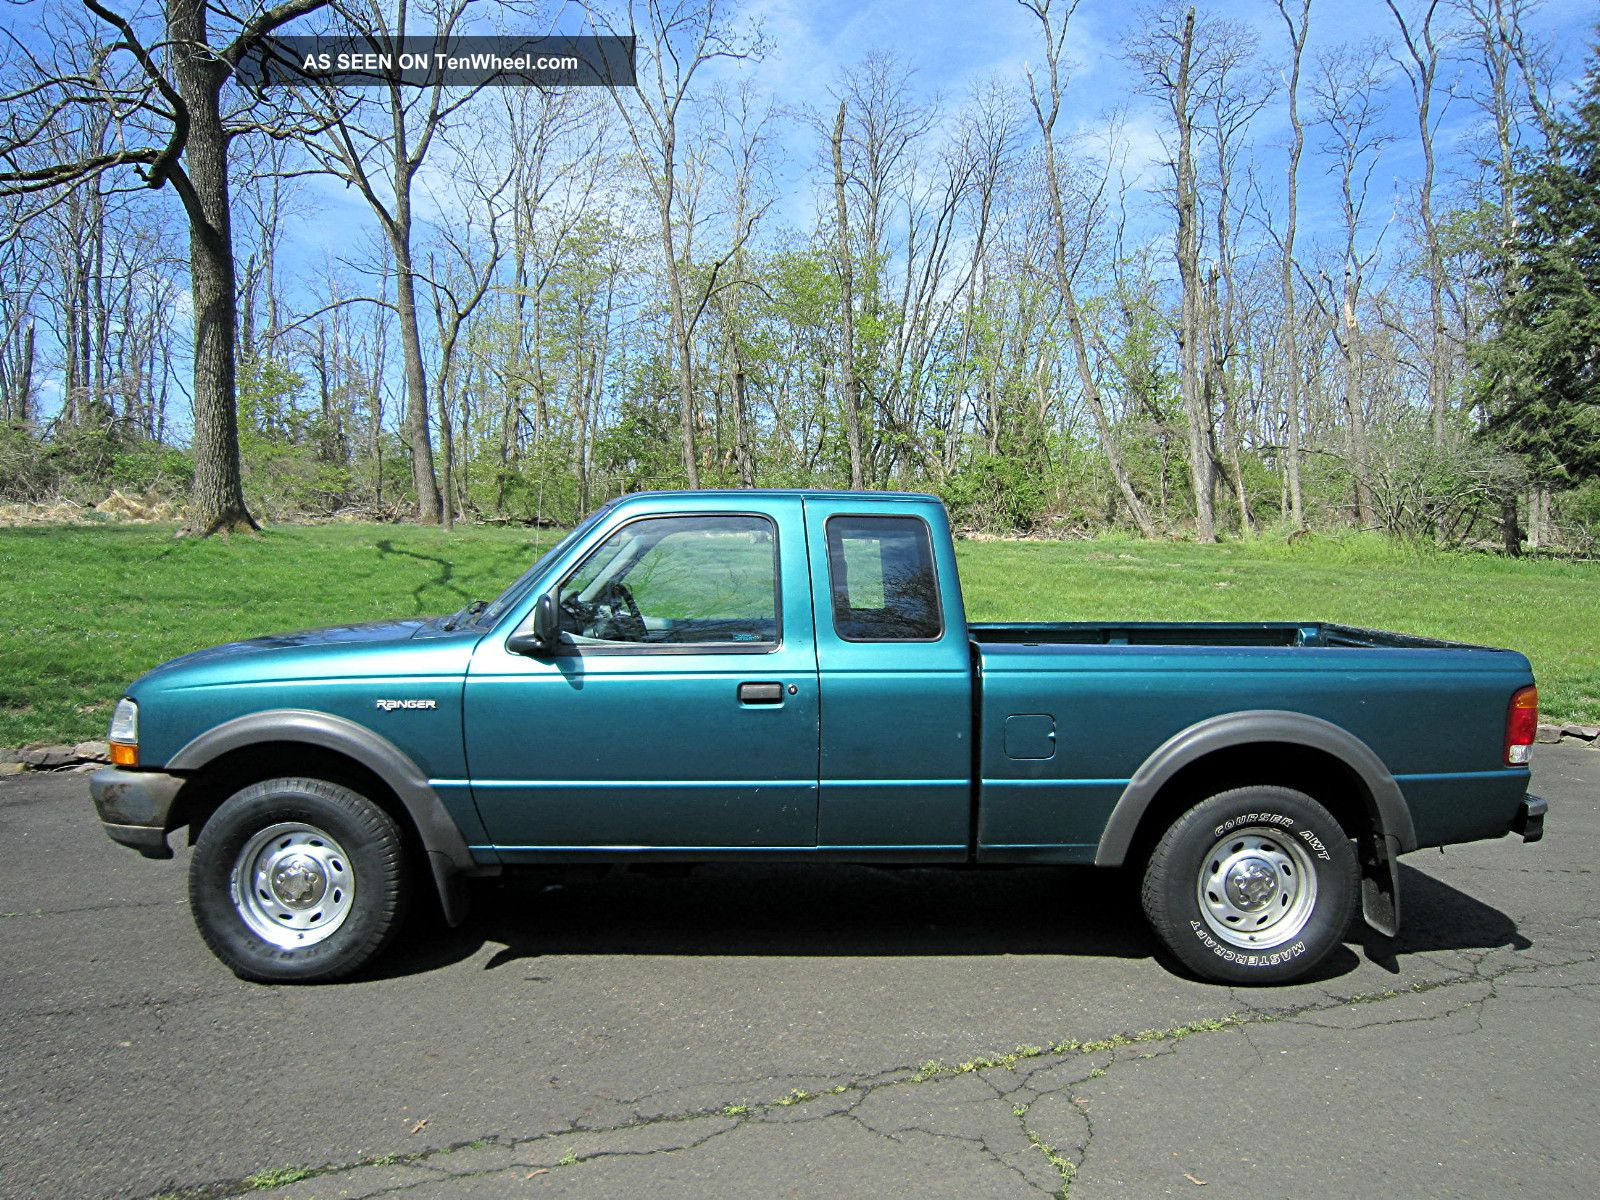 1998 ford ranger with stretch cab and 4x4 and